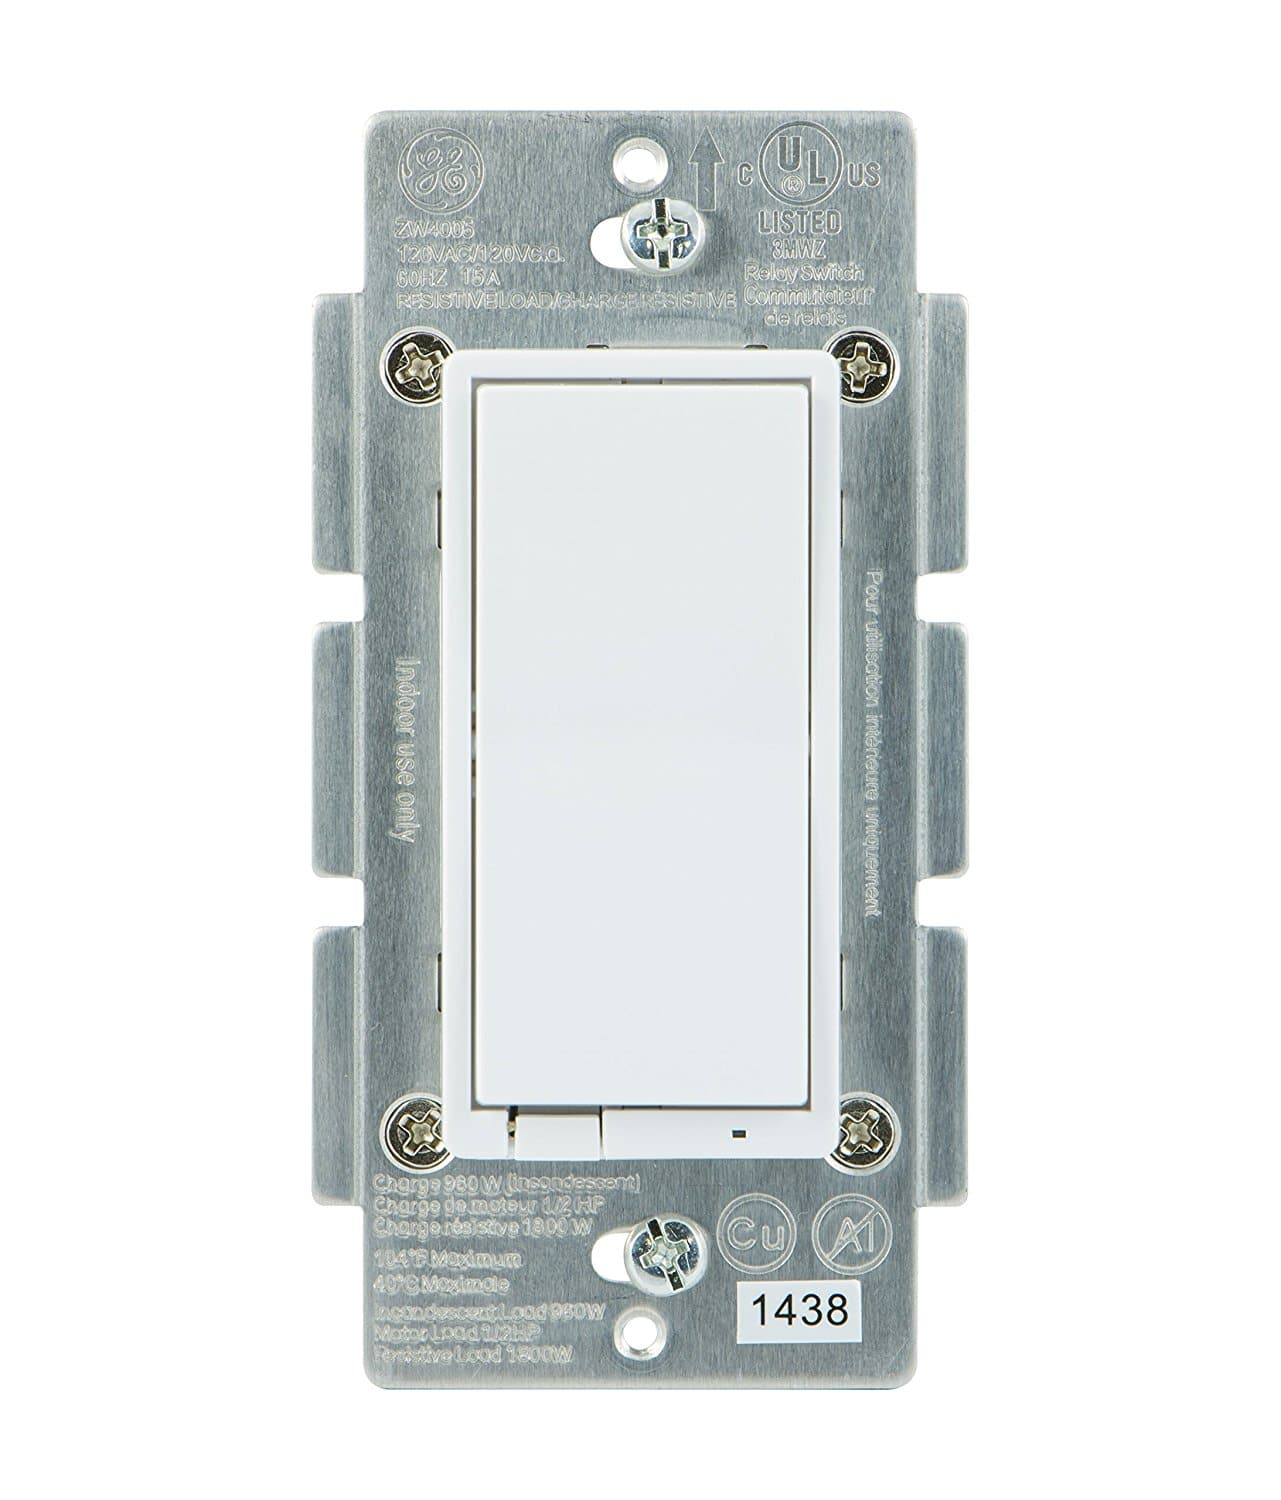 GE Z-Wave Wireless Smart Lighting Control Smart Switch, On/Off, In-Wall, Includes White & Light Almond Paddles, Works with Amazon Alexa, 12722 [In-Wall Paddle Switch] $19